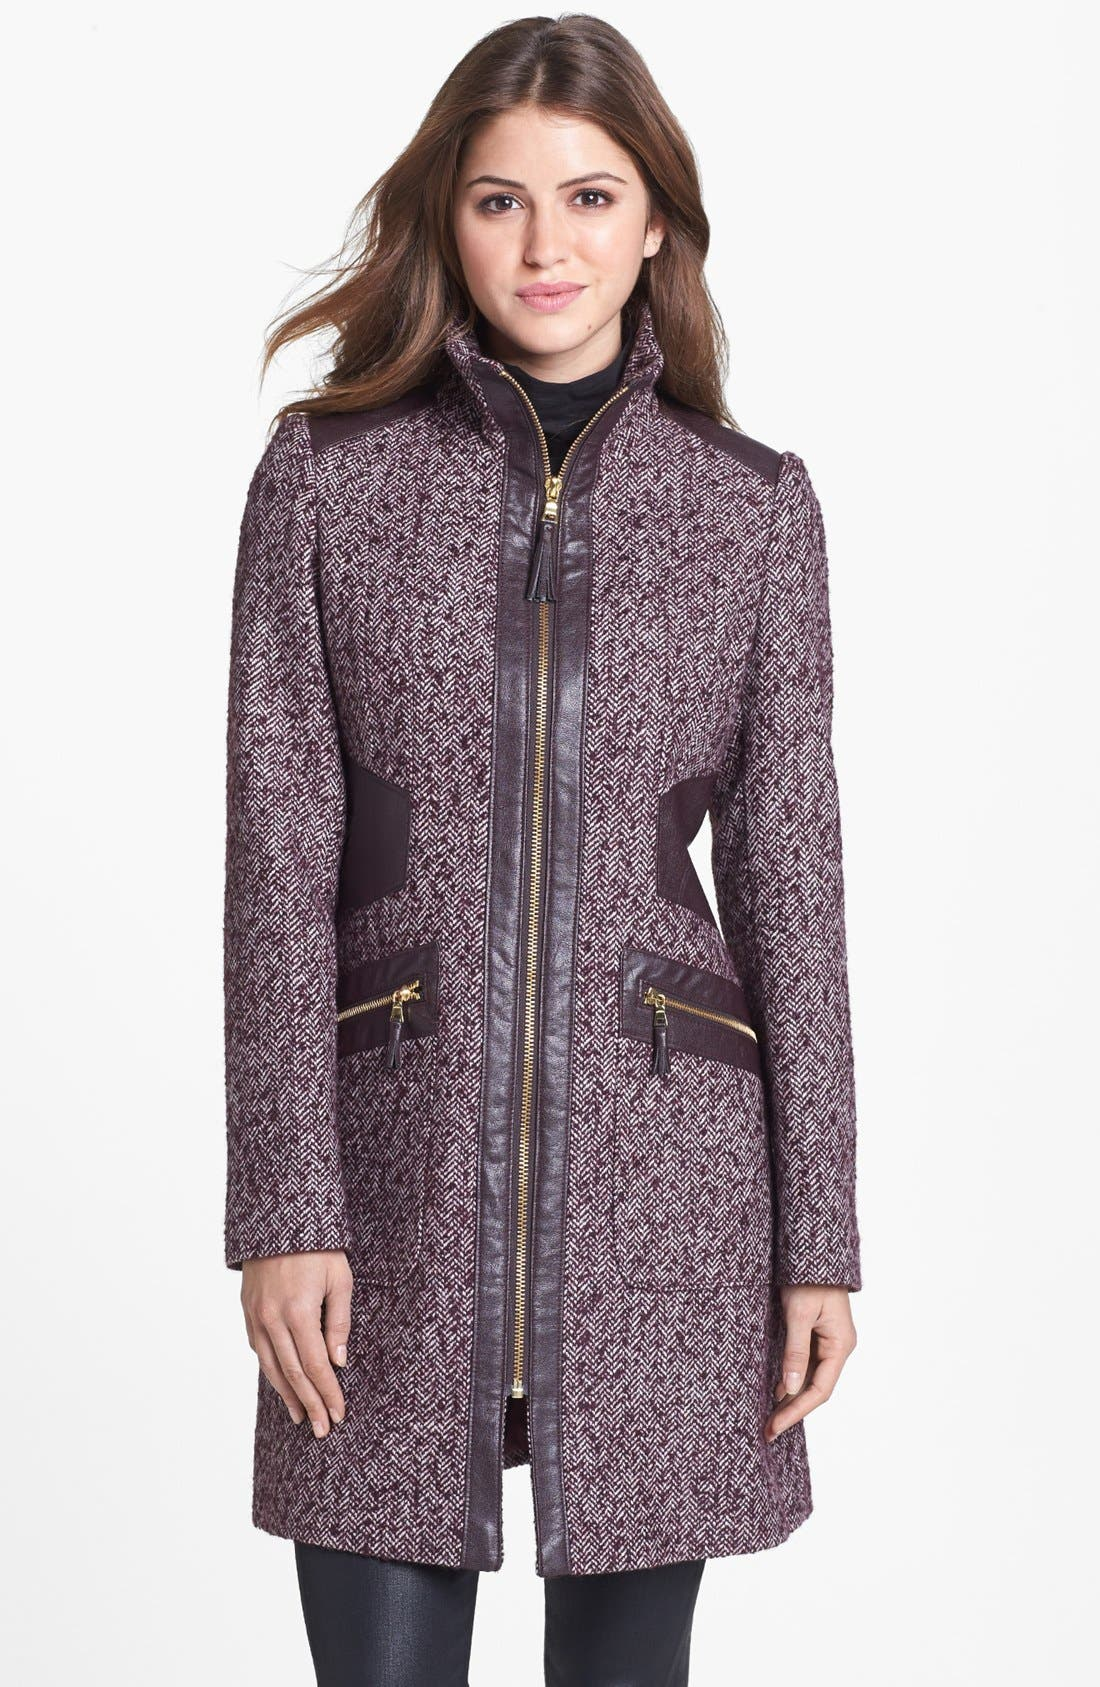 Alternate Image 1 Selected - Via Spiga Faux Leather Trim Herringbone Tweed Coat